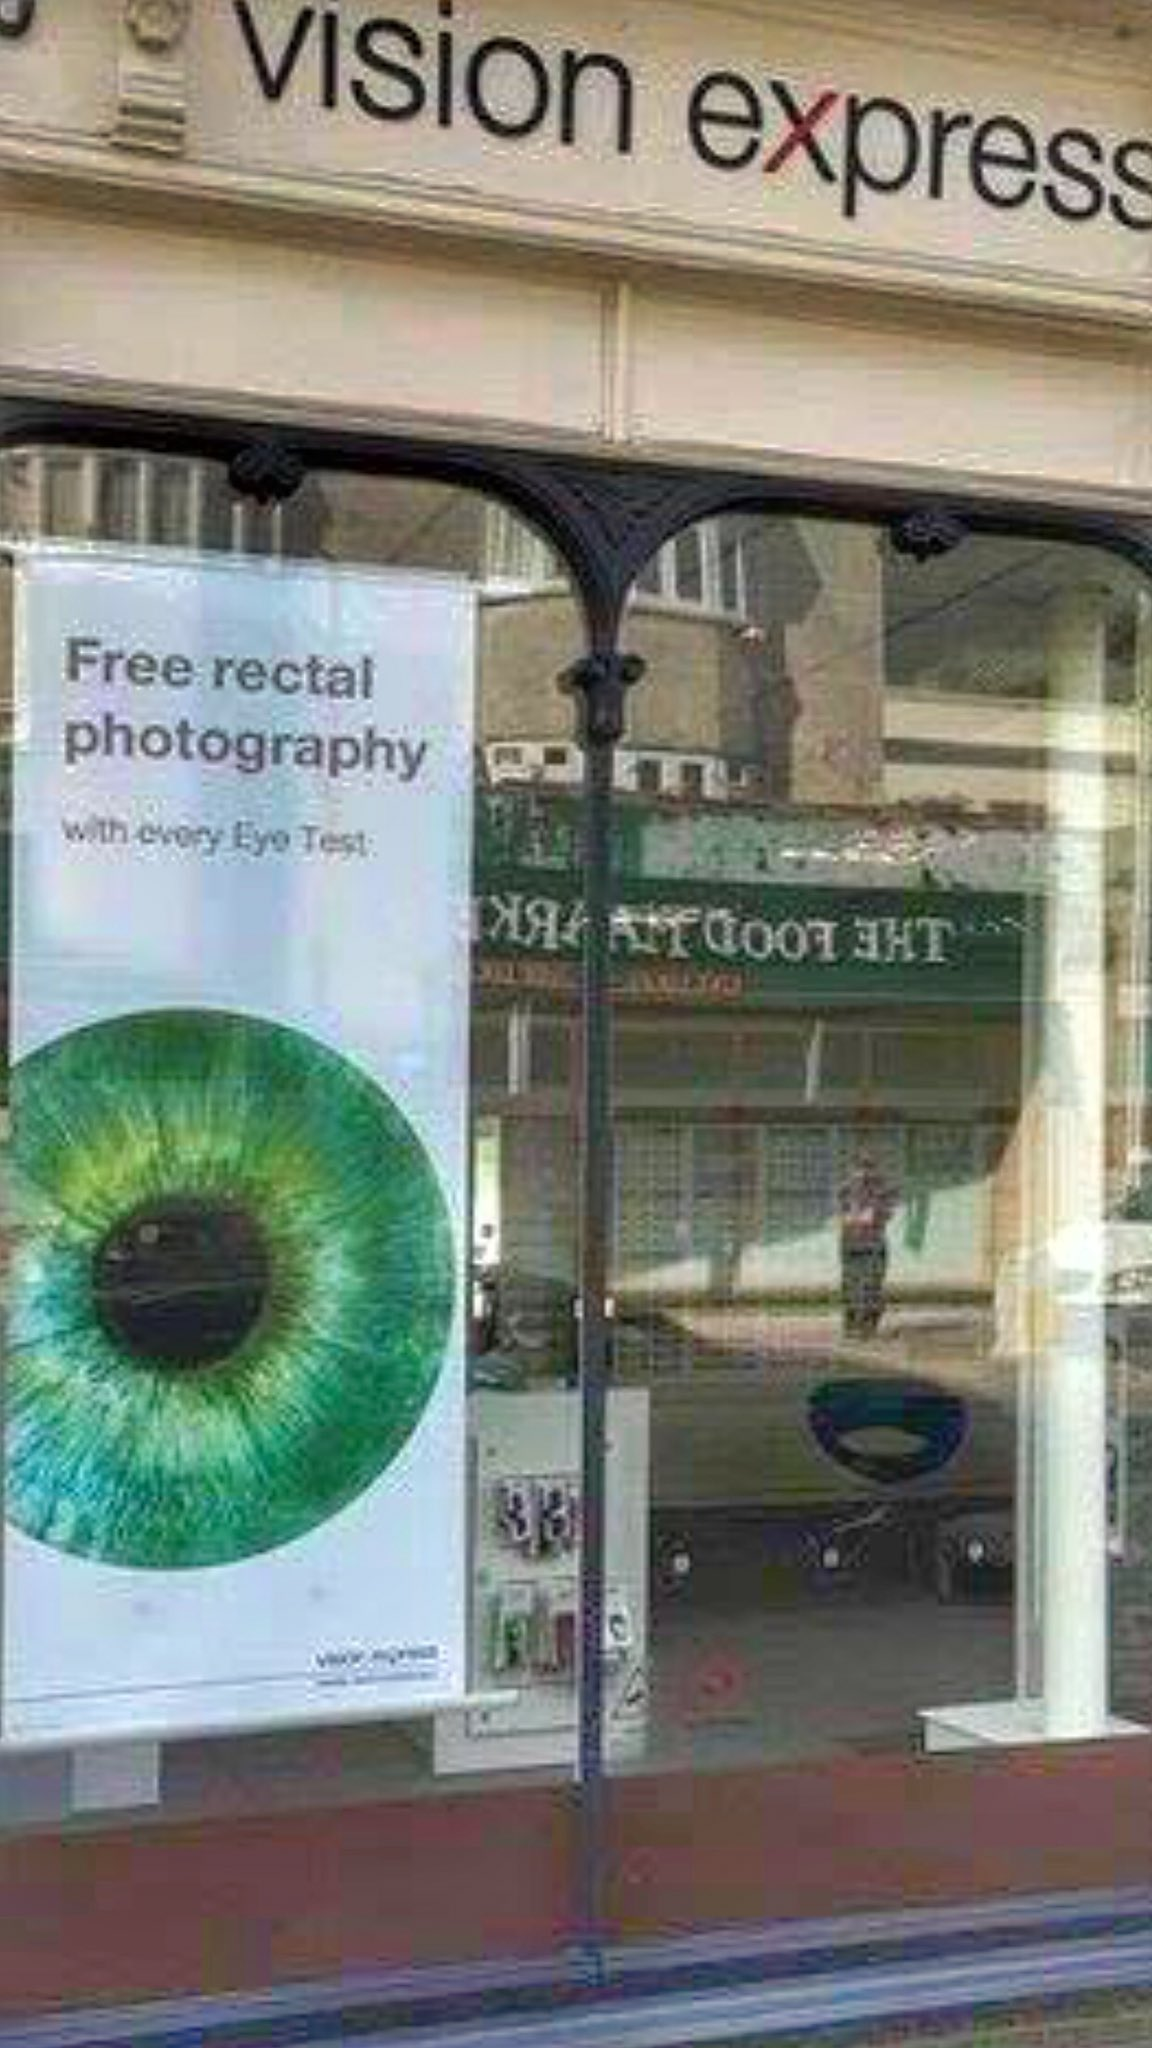 Going to give @VisionExpress a miss for a bit... https://t.co/CklNEeFtNS